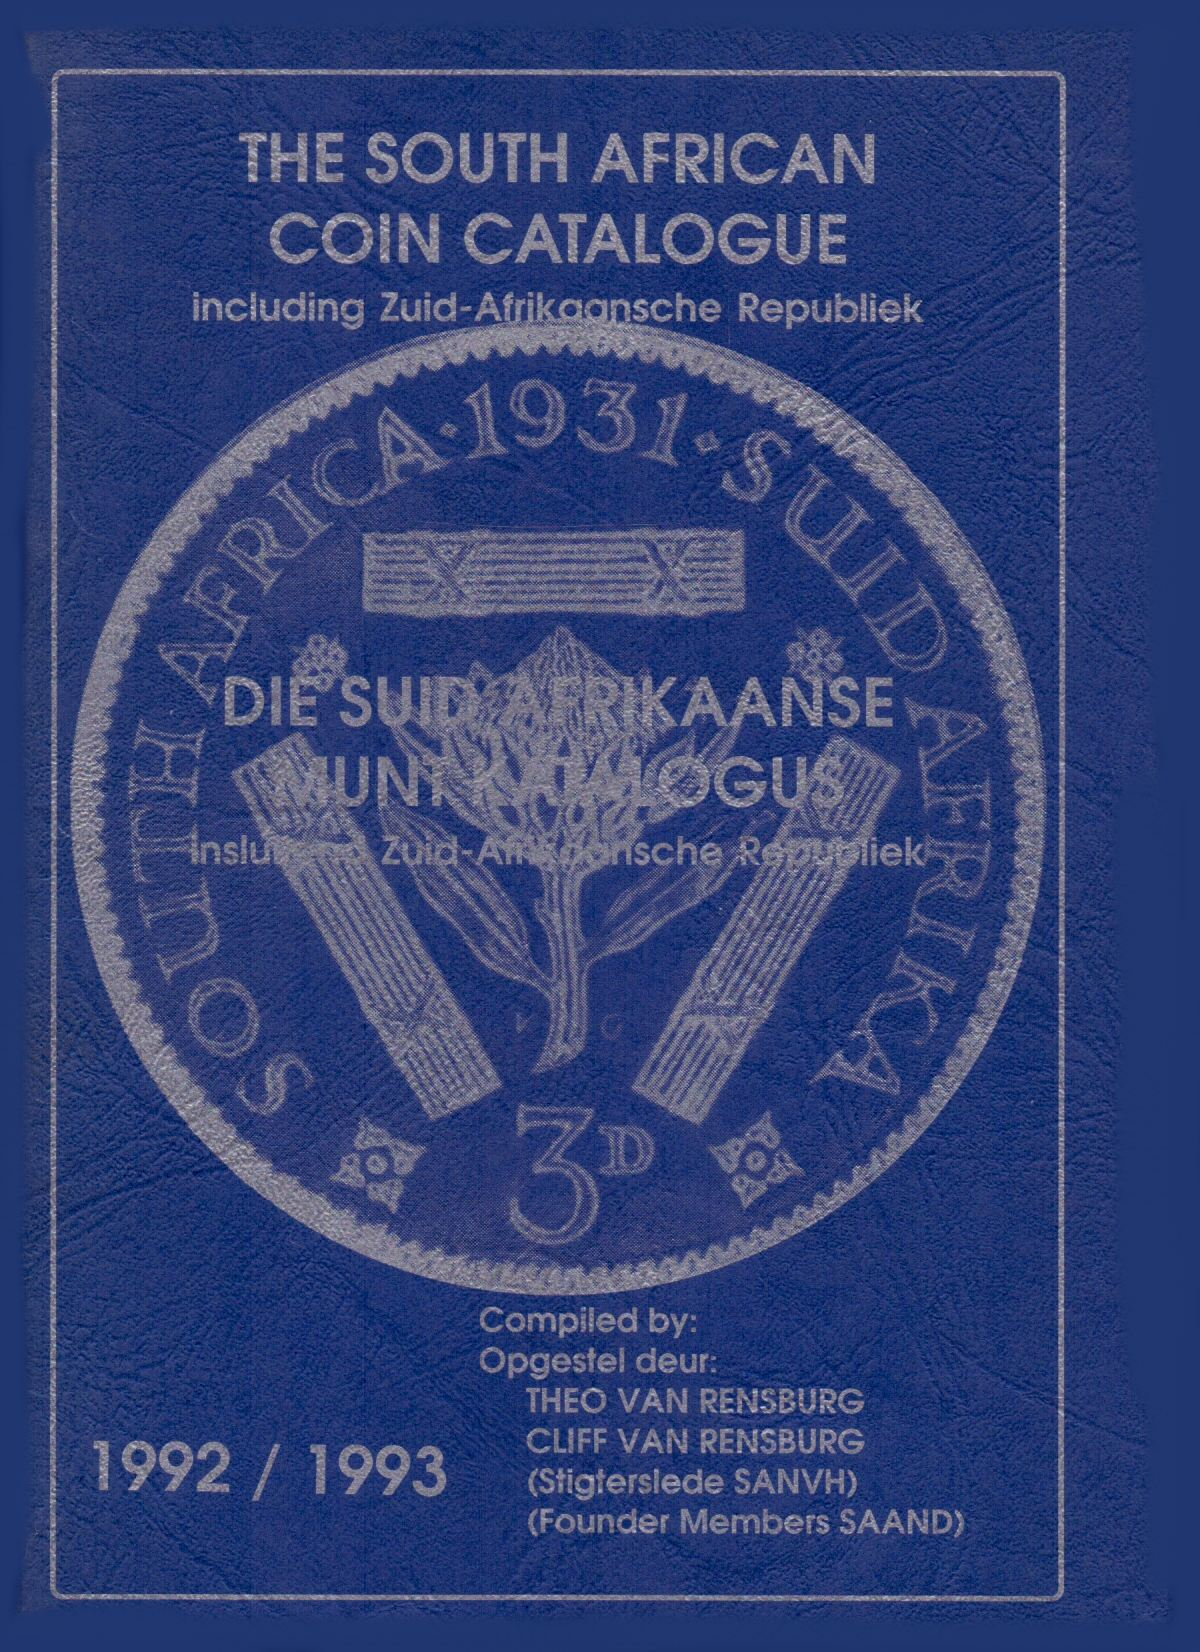 Randburg Coin Catalogue 1992 to 1993